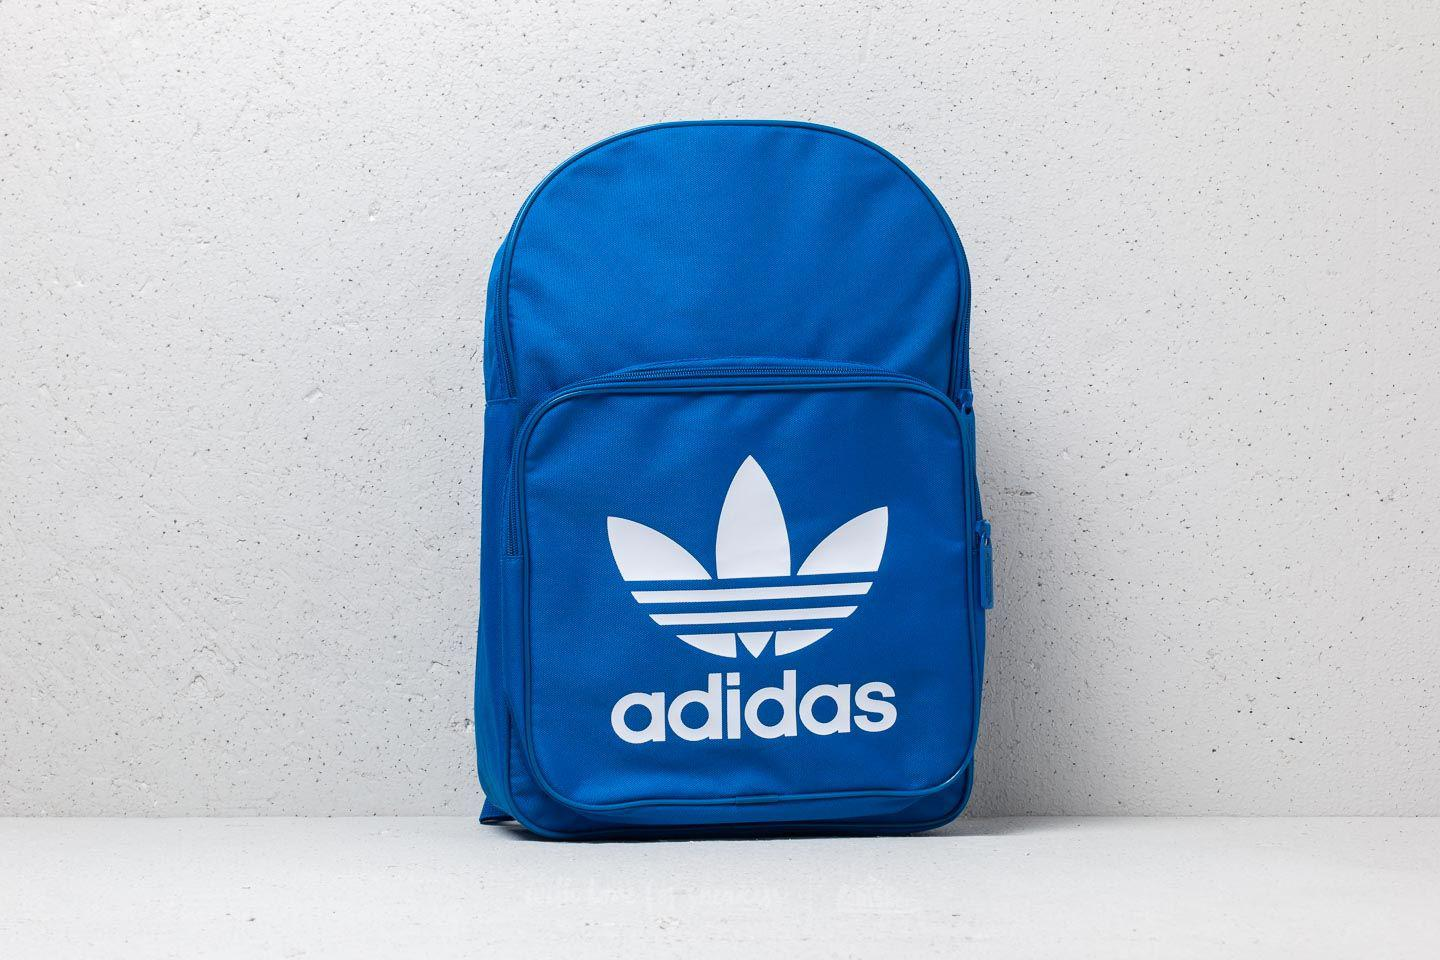 cf21b2bfce Lyst - adidas Originals Adidas Trefoil Backpack Blue in Blue for Men